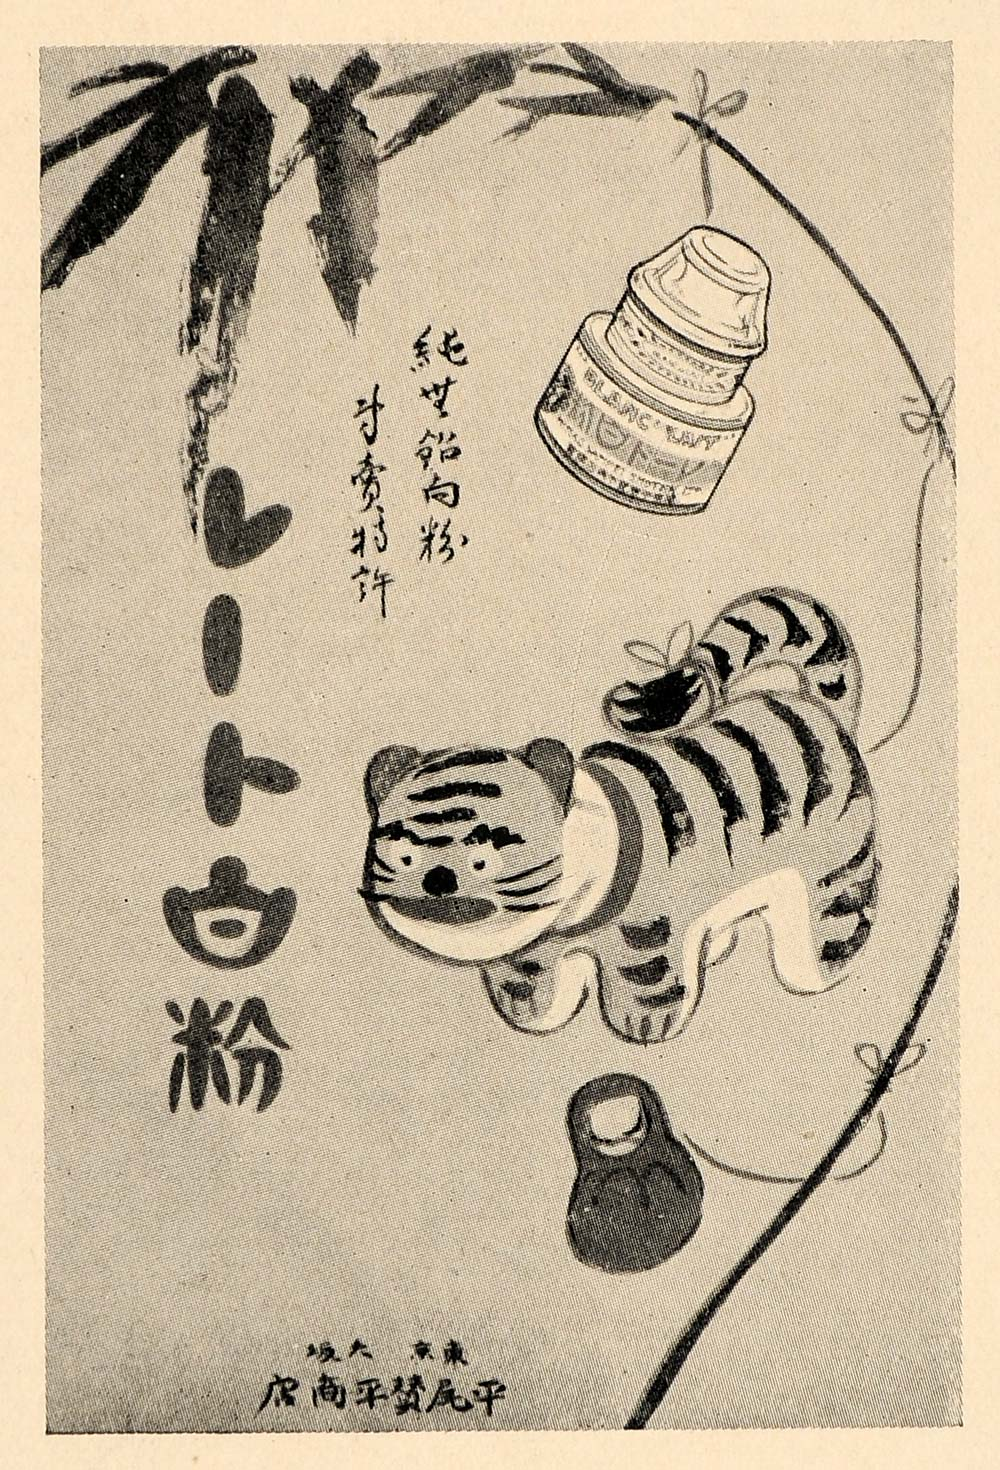 1926 Japanese Ad Poster Lait Face Powder Hirao Print - ORIGINAL HISTORIC POS8A